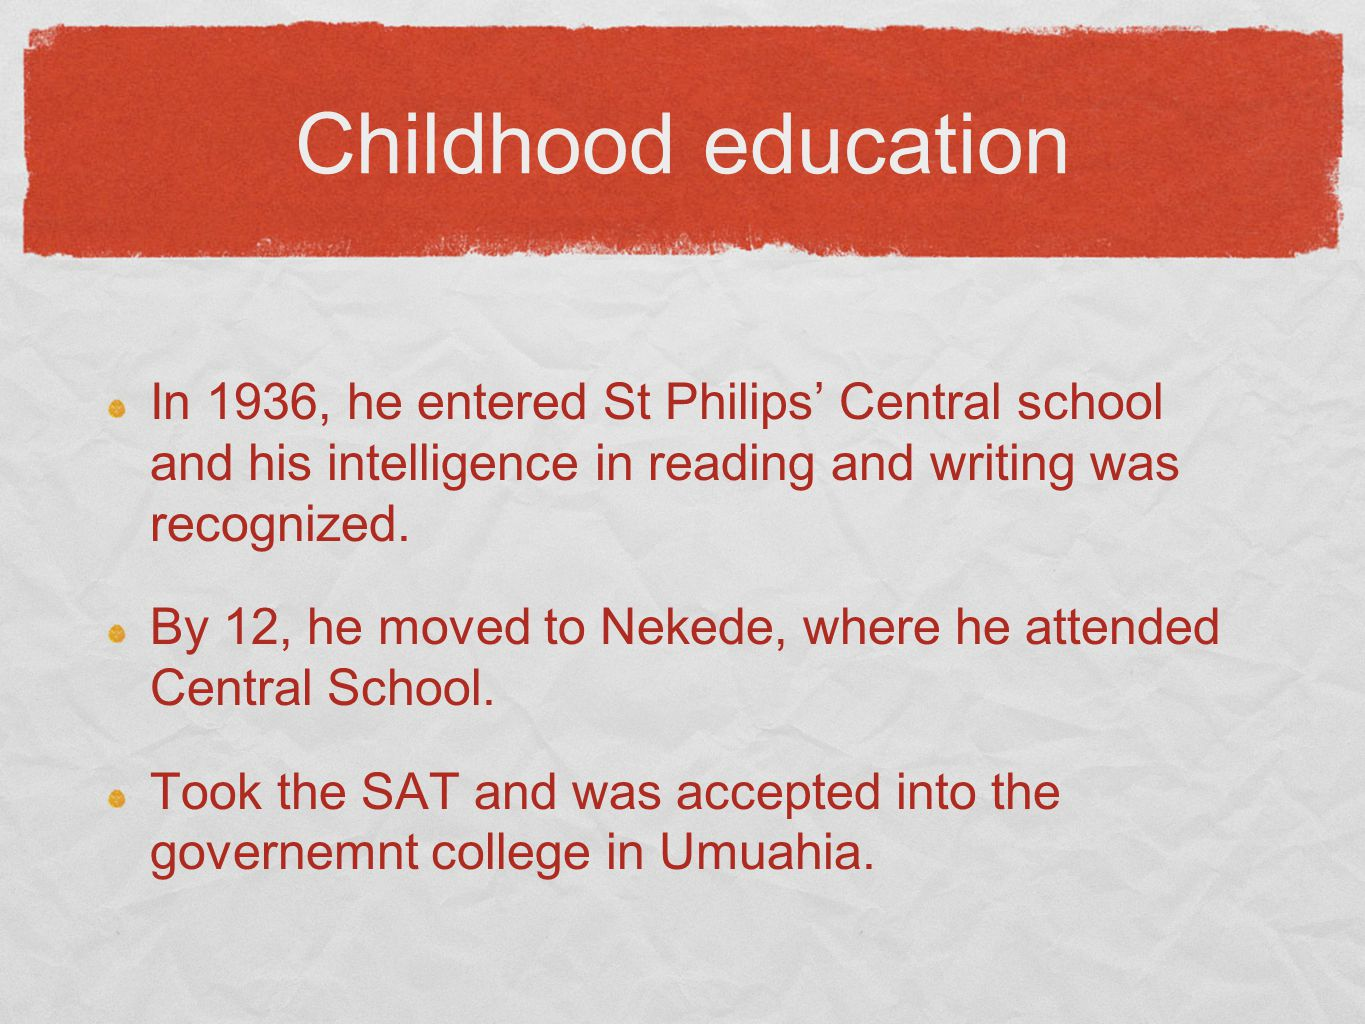 Childhood education In 1936, he entered St Philips' Central school and his intelligence in reading and writing was recognized.